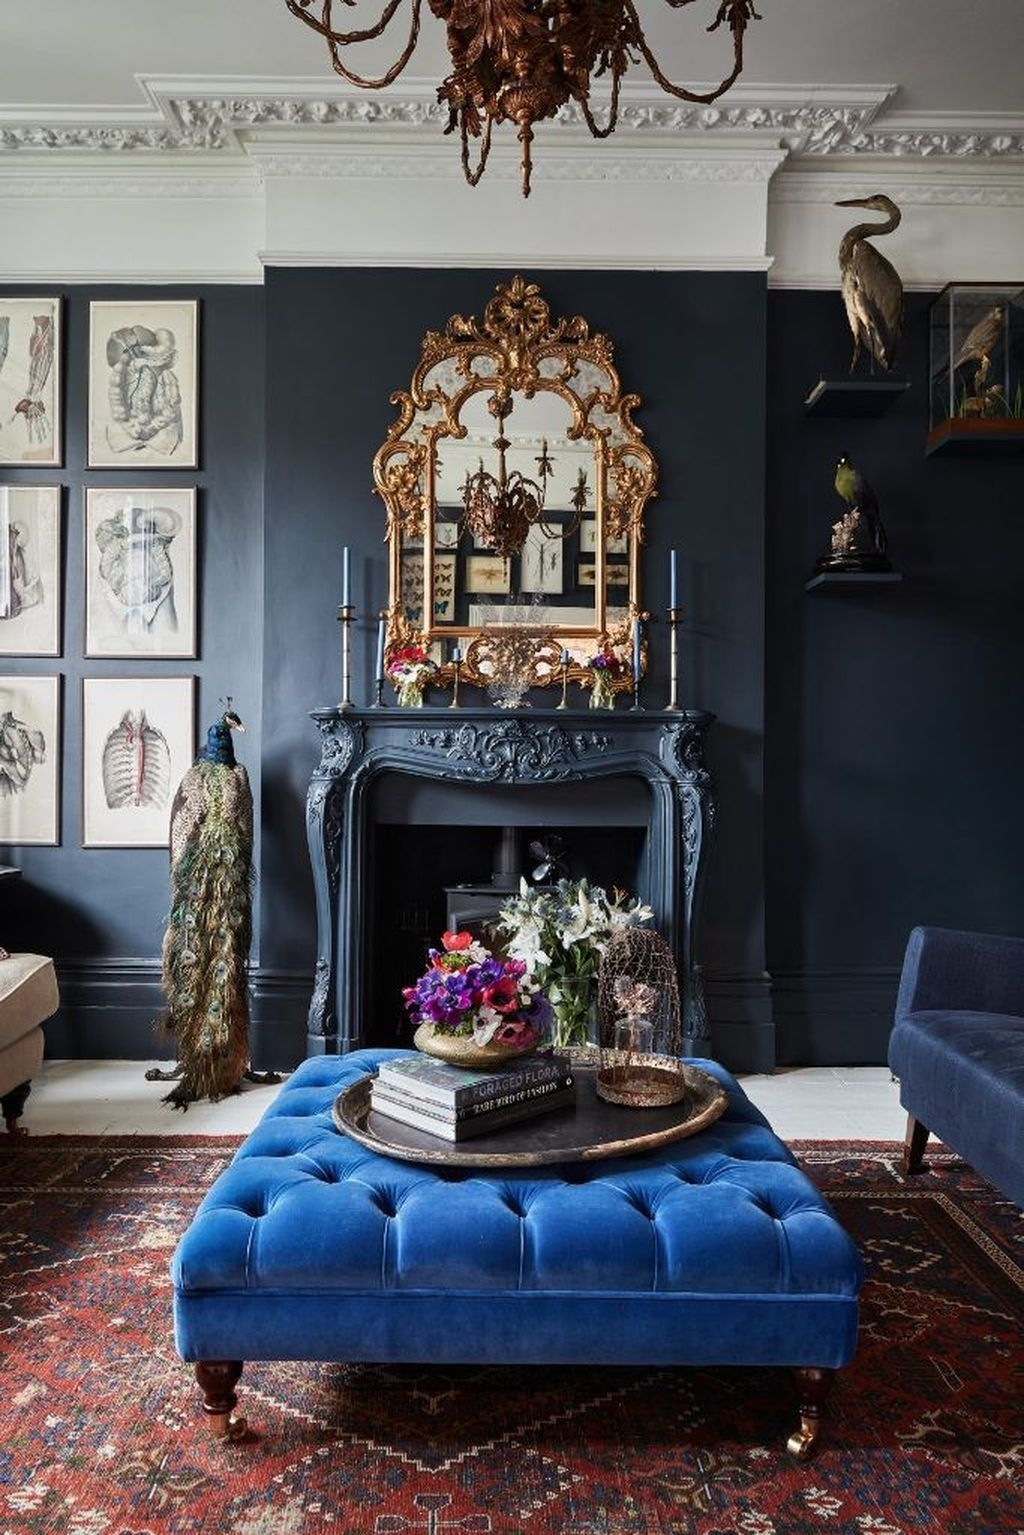 38 Marvelous Blue Interior Designs Ideas With Images